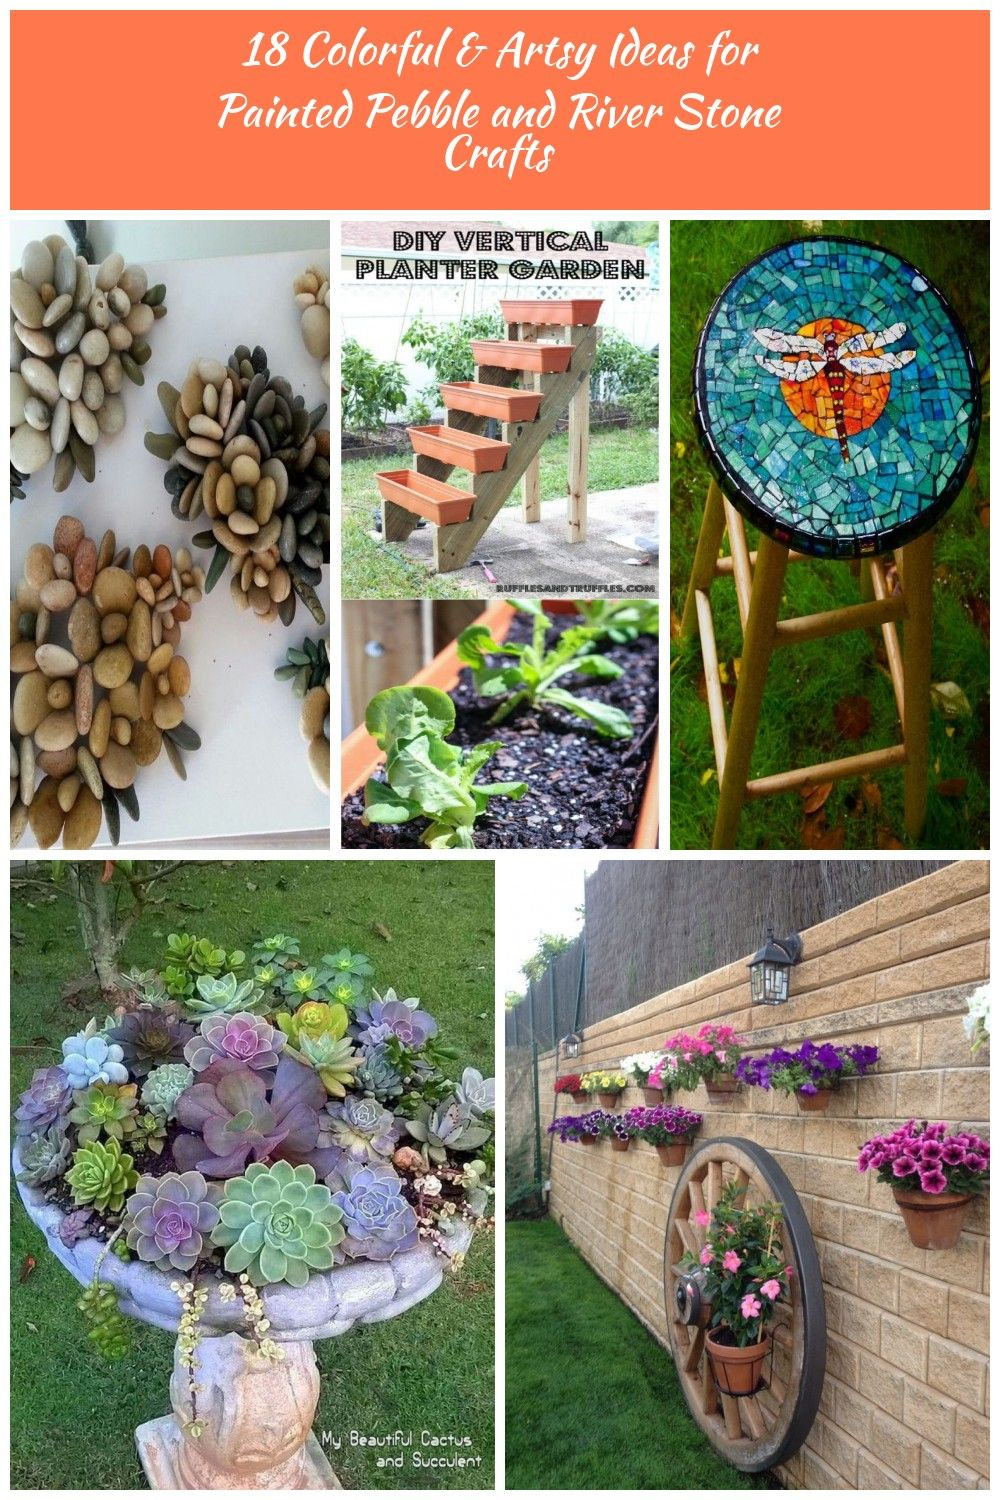 Stone Flowers Garden Decor Diy 18 Colorful Artsy Ideas For